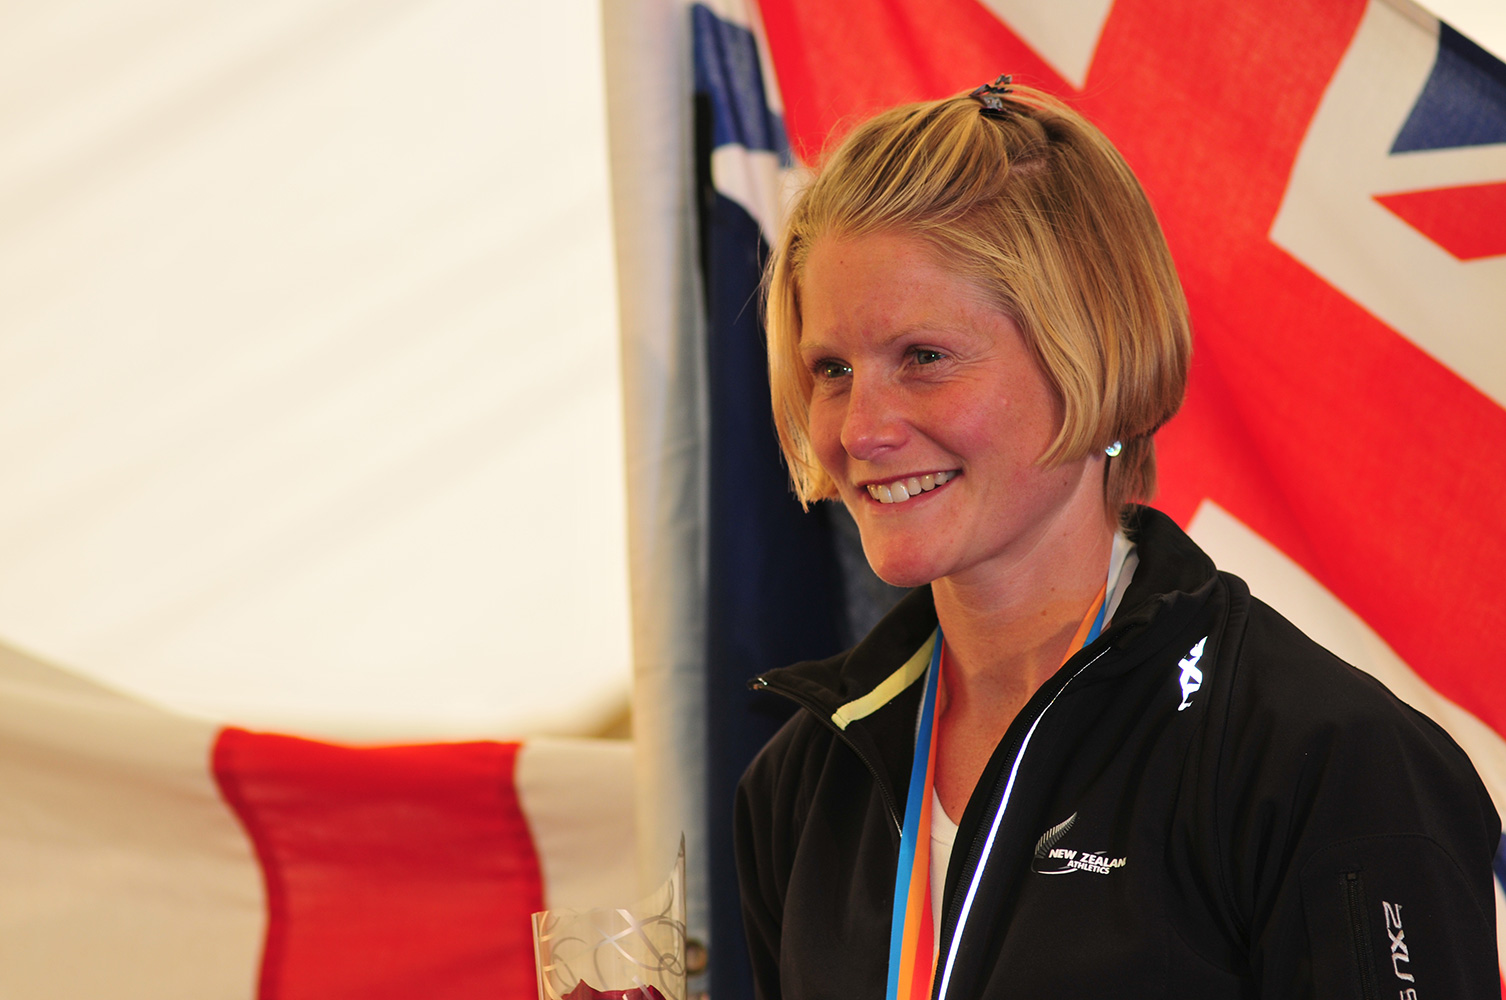 I shot this event in Keswick, Cumbria for the I.A.U. from 17th - 20th September 2009. This is Anna Frost of New Zealand, gold medalist in the Womens' Uphill Mountain Race.